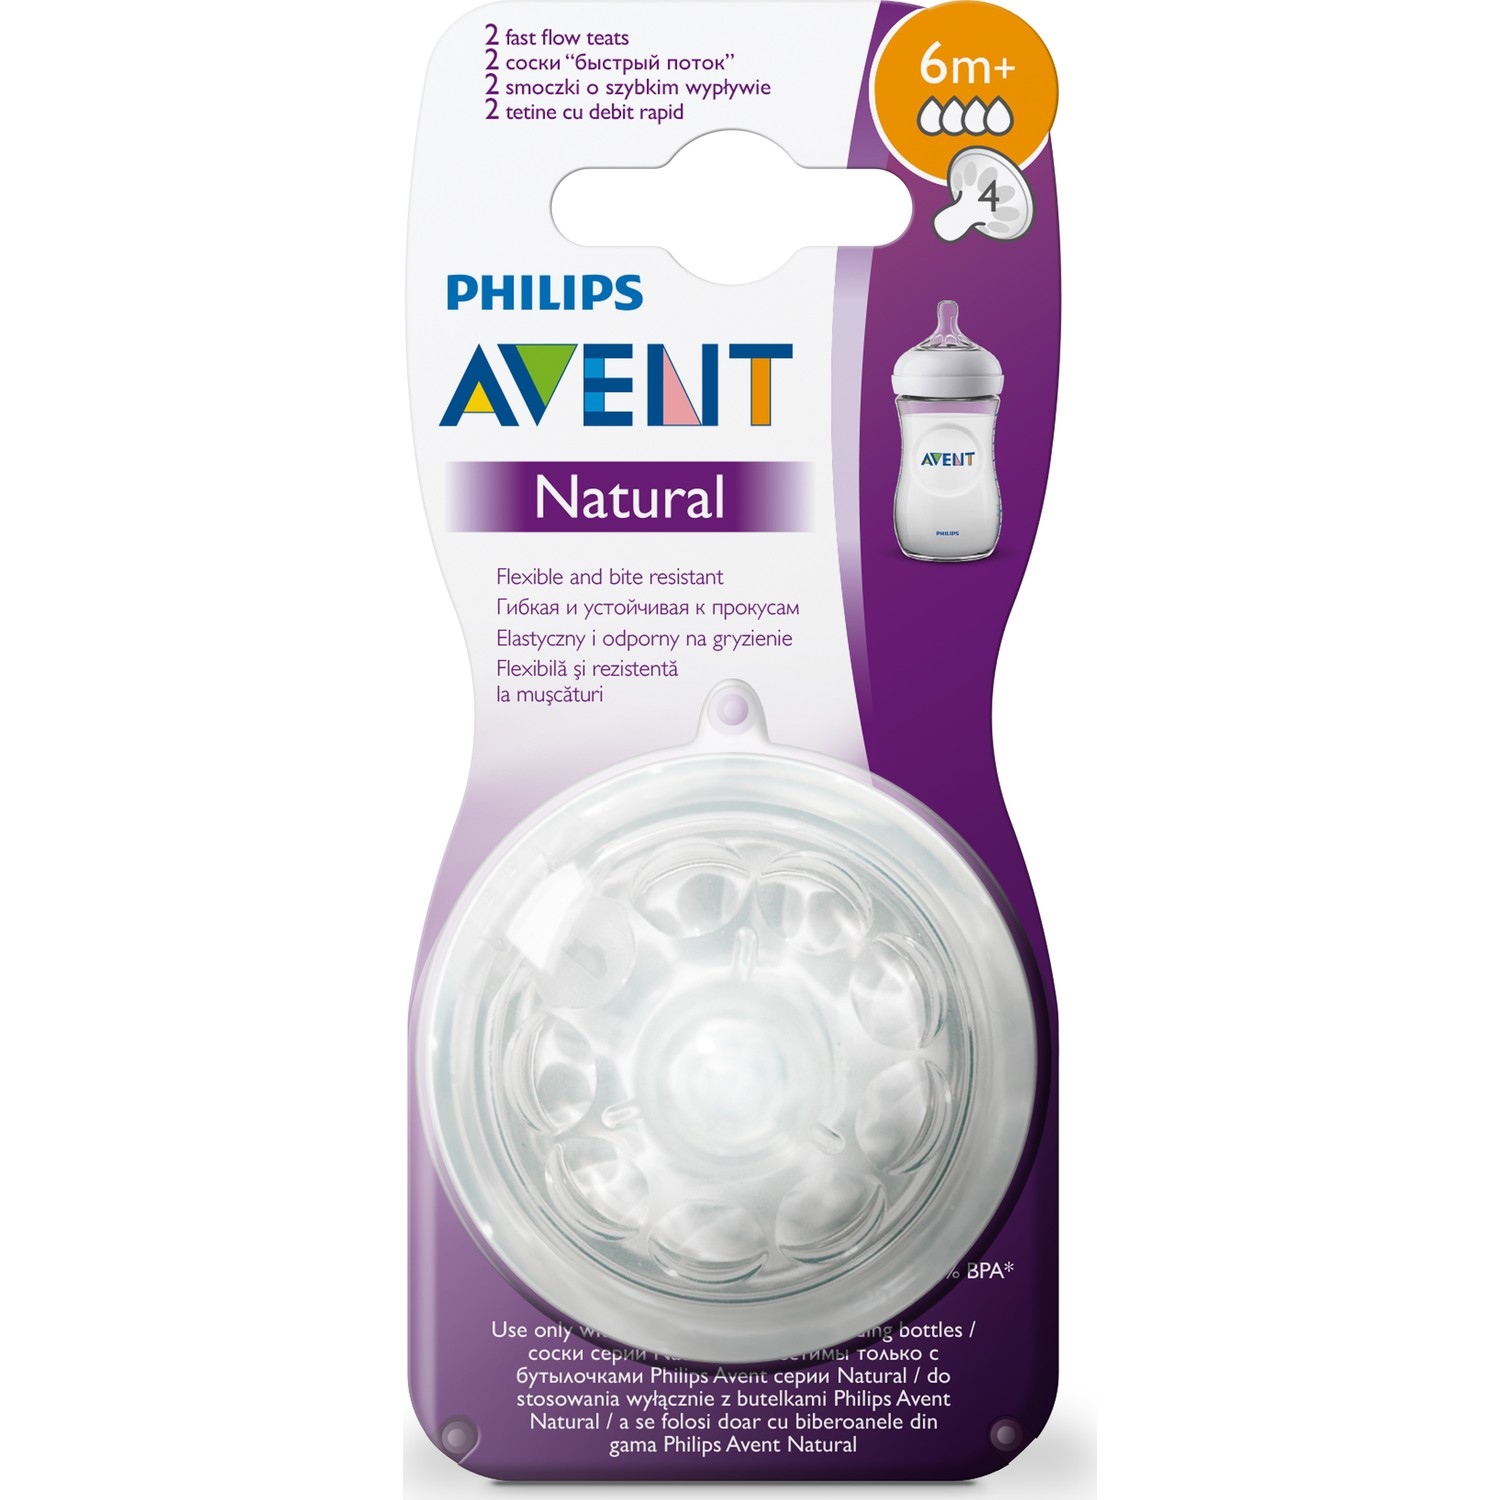 Avent Natural Baby Bottle Pacifier 6 Months + Size 4 With 2 SCF044 / 27